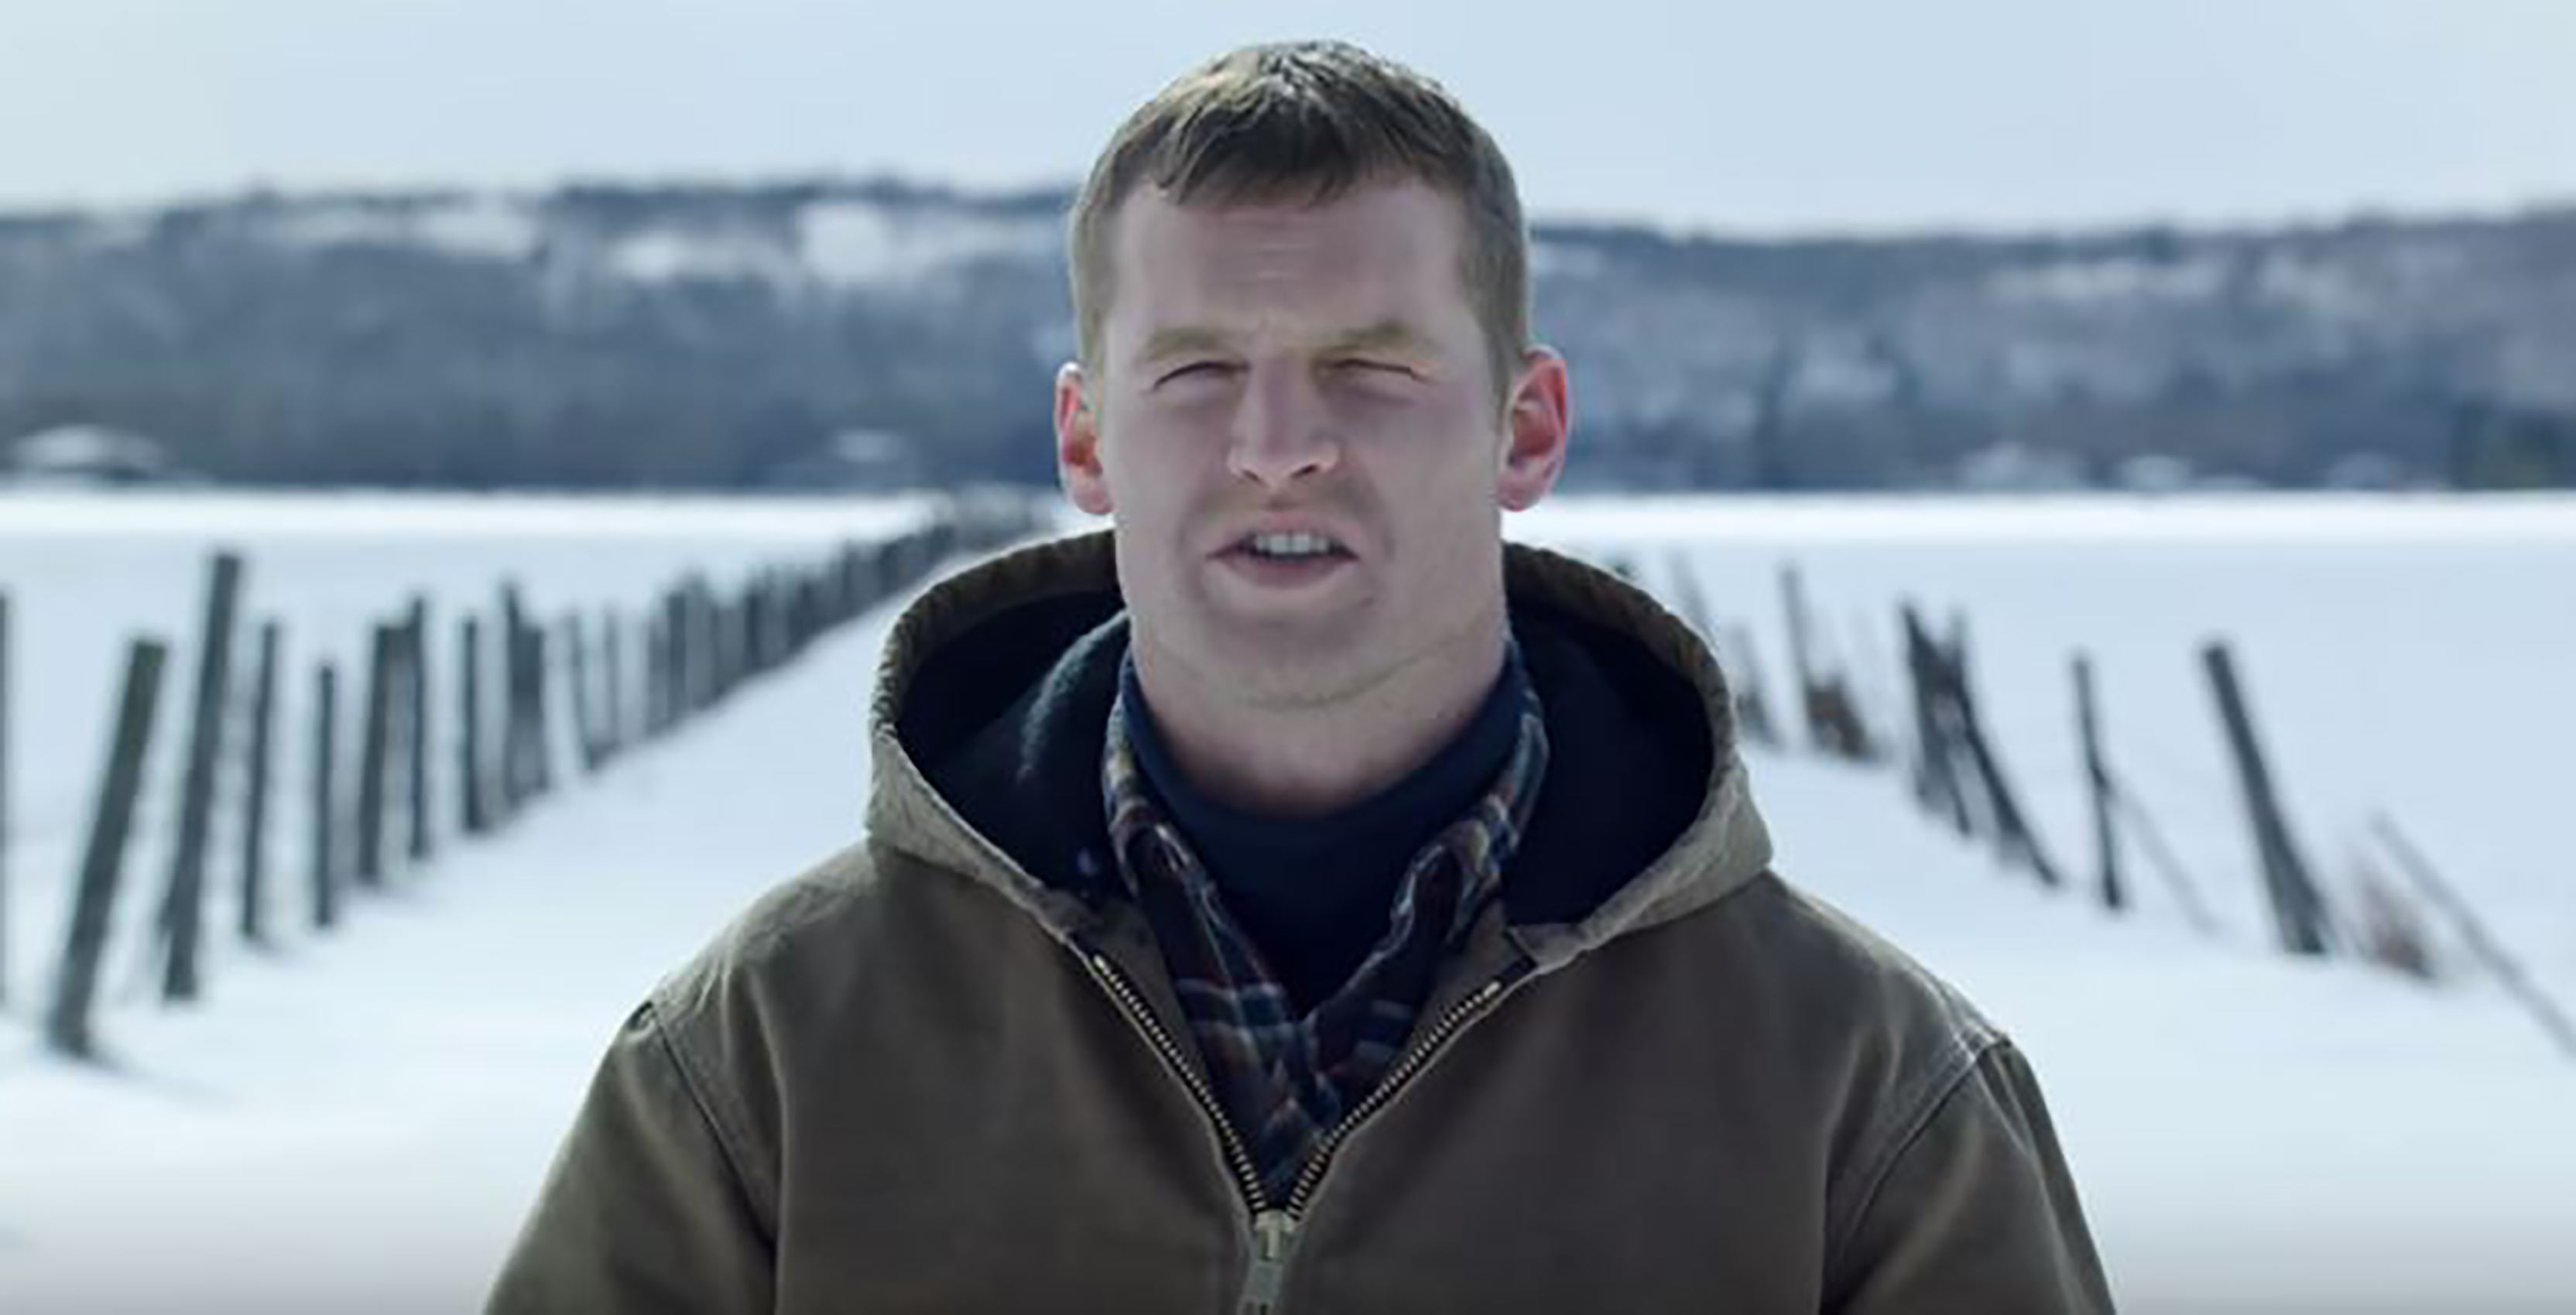 letterkenny season 5 comes to cravetv on june 29